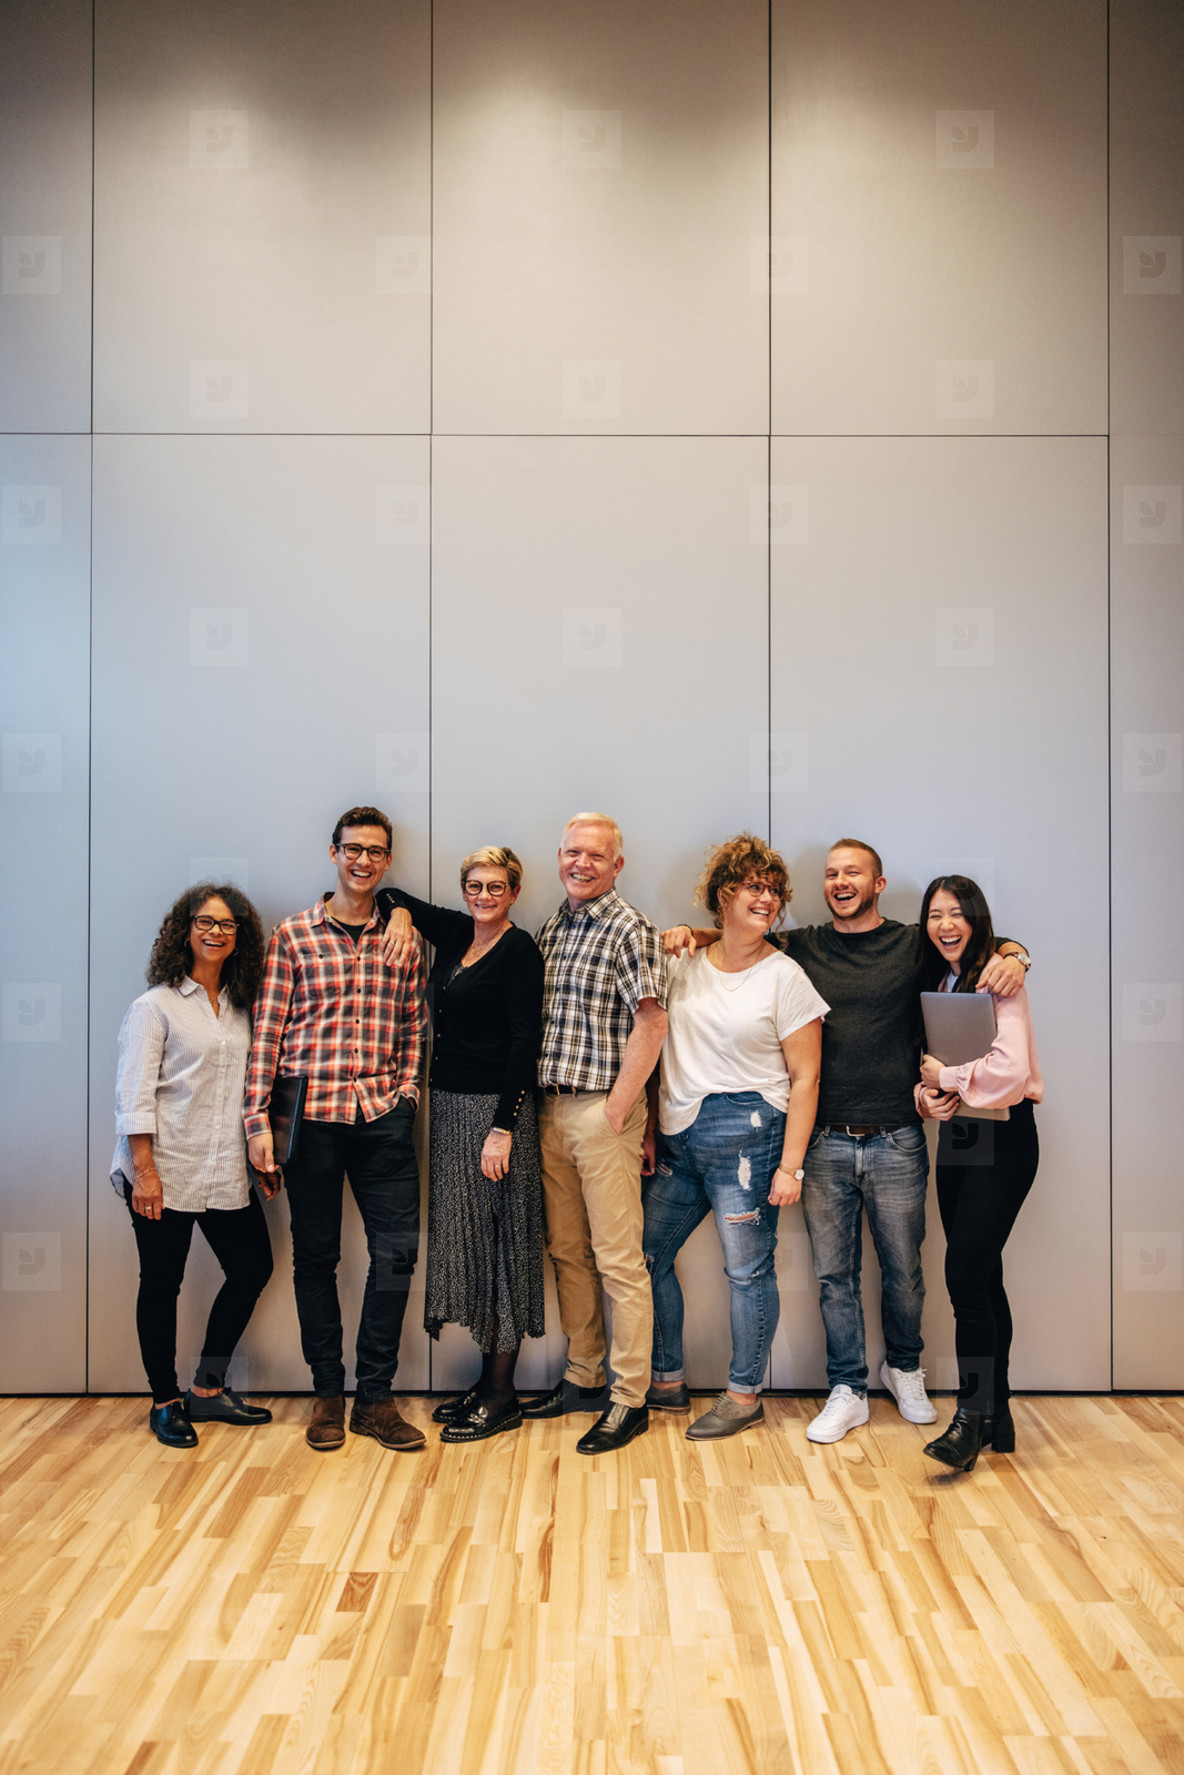 Business team standing together for a portrait